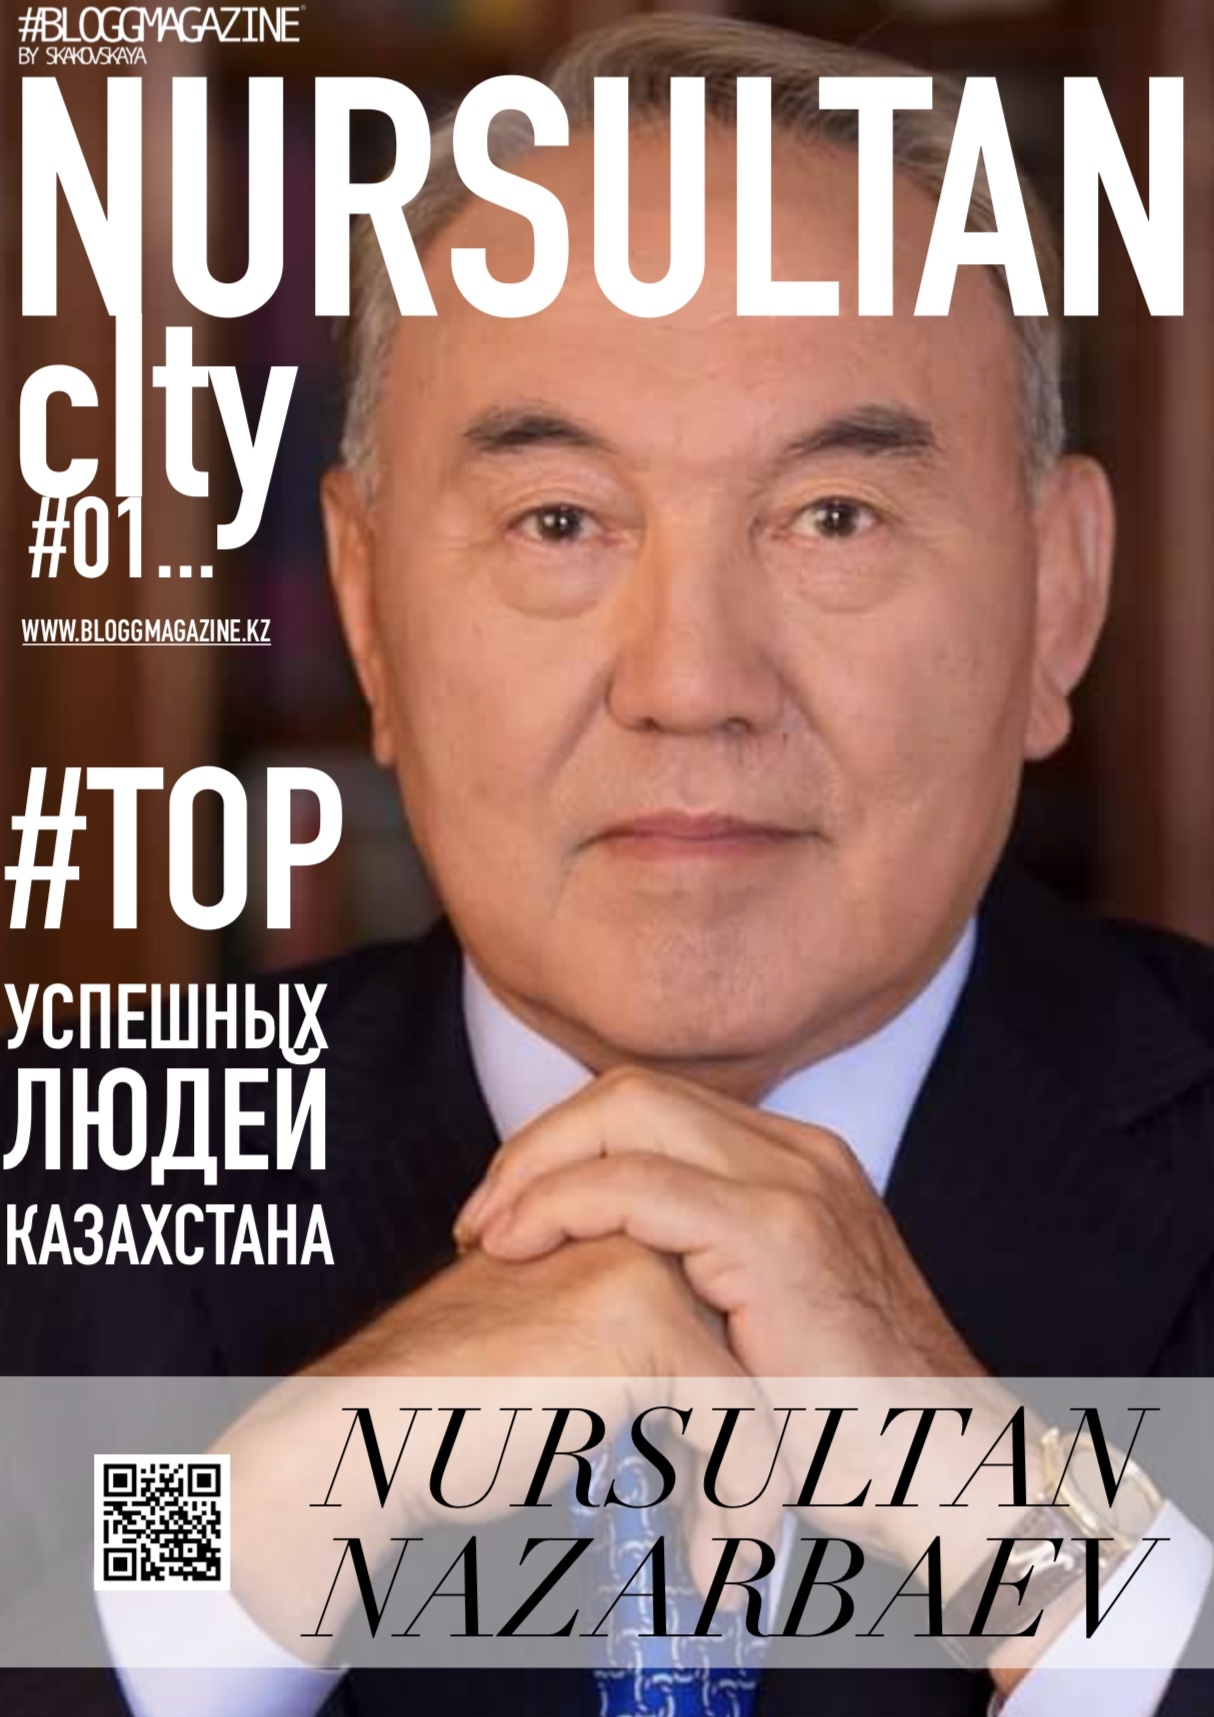 01 NURSULTAN city, #BLOGGMAGAZINE